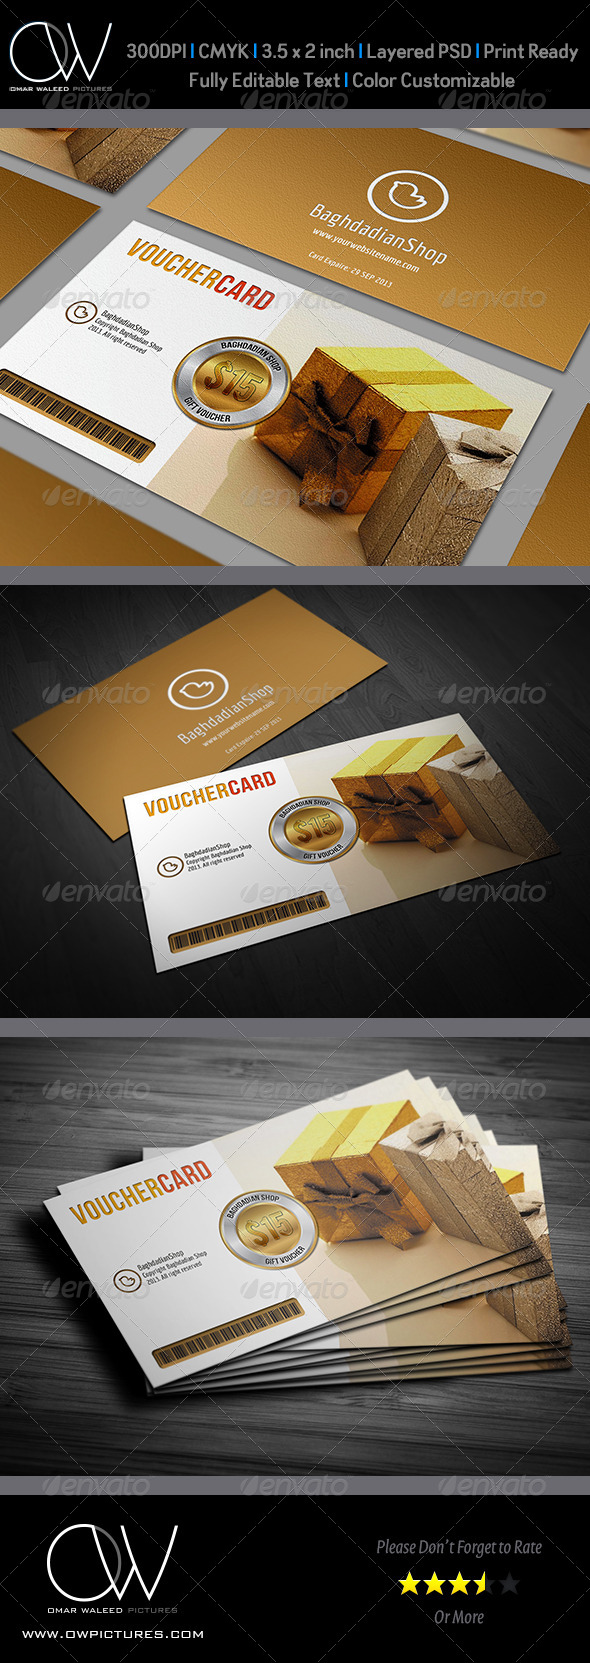 GraphicRiver Gift Voucher Card Vol.3 4380669